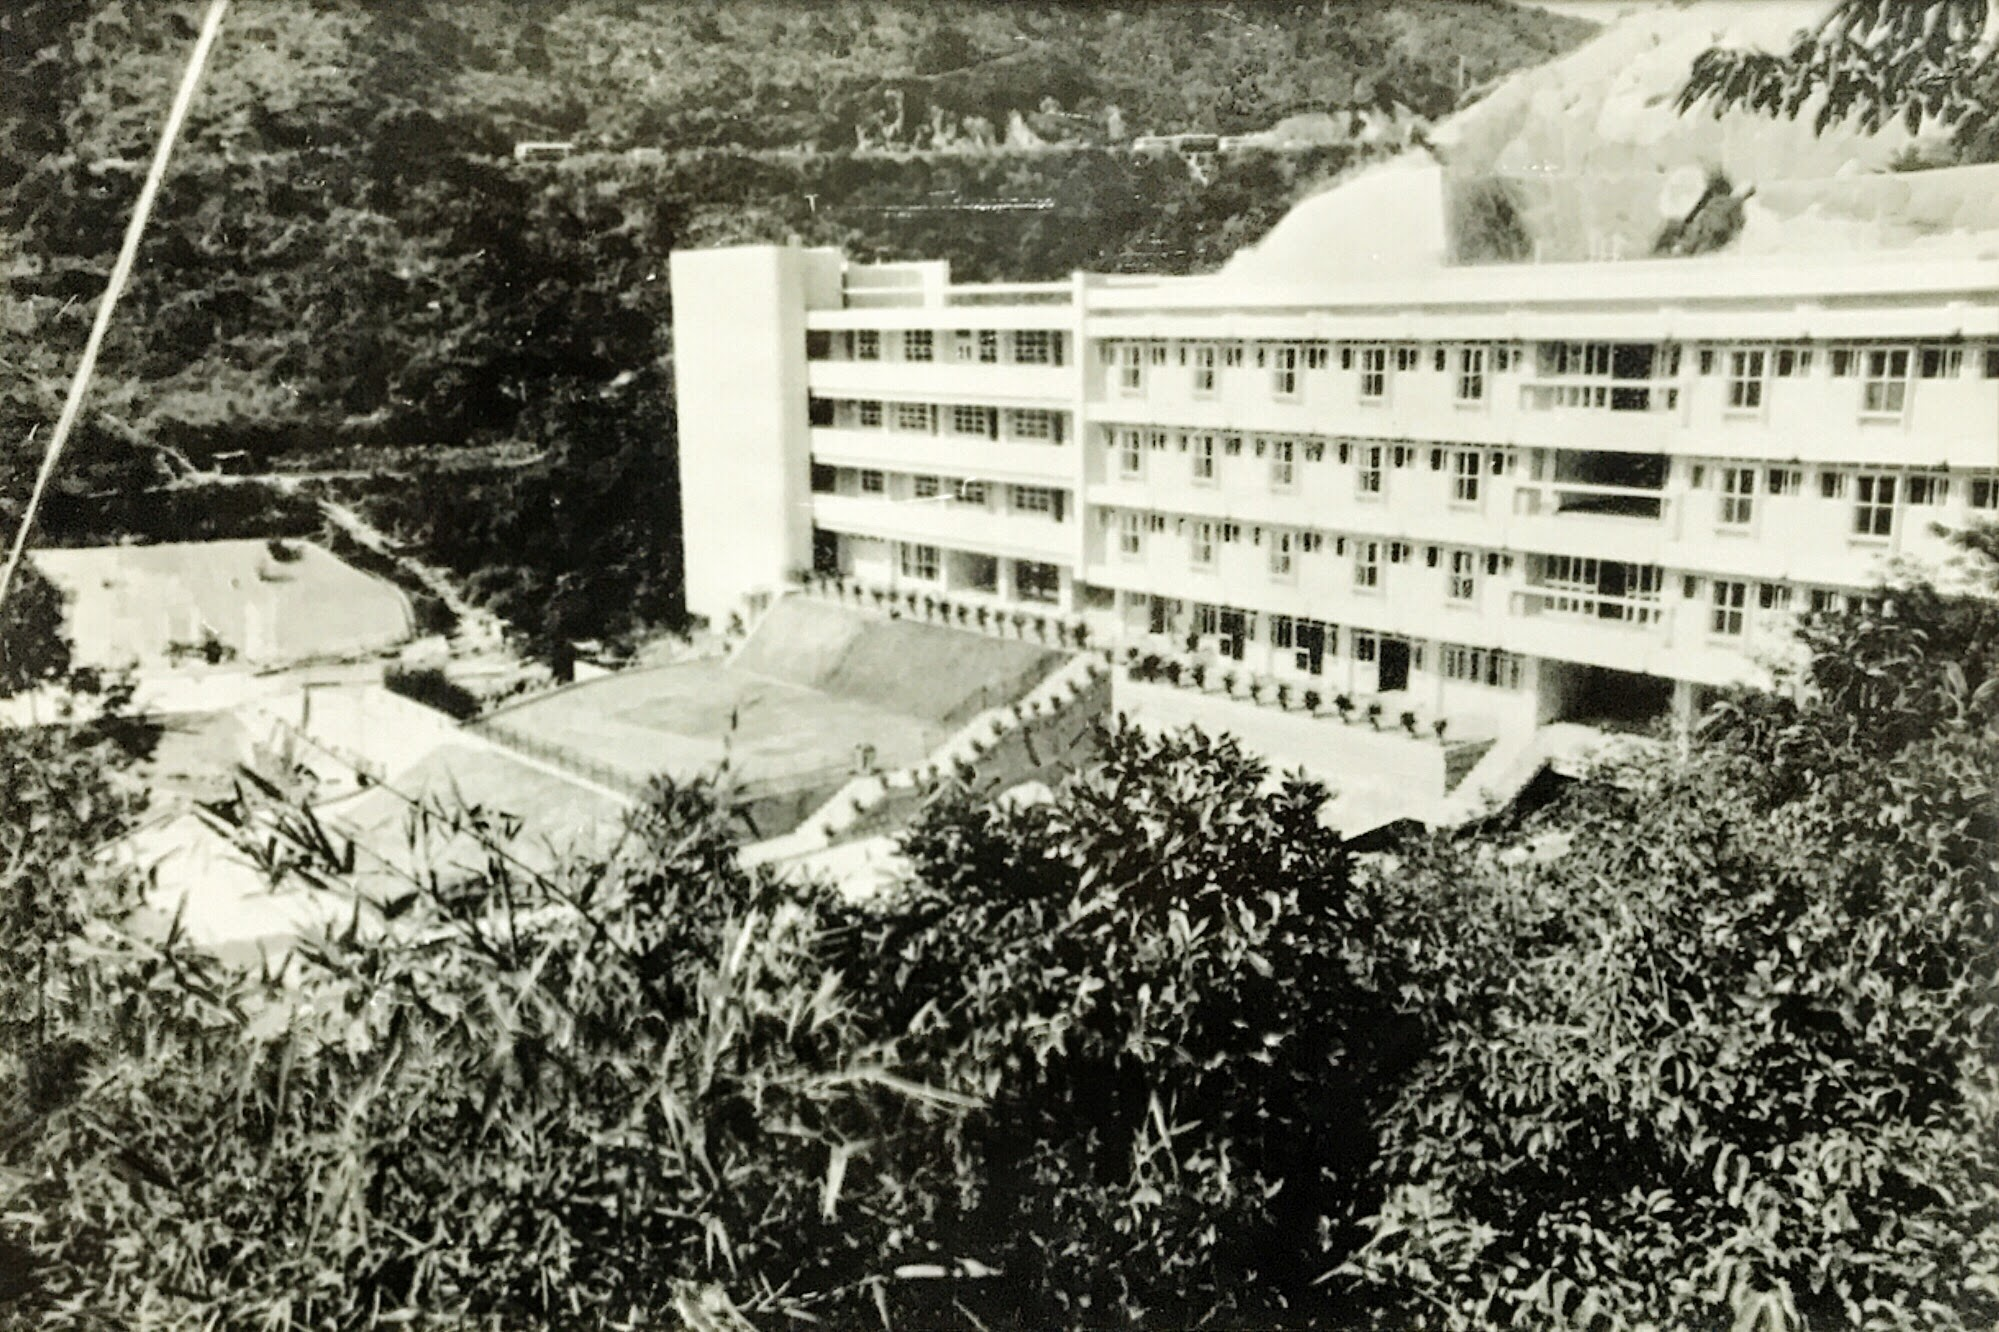 Theology Building upon Completion